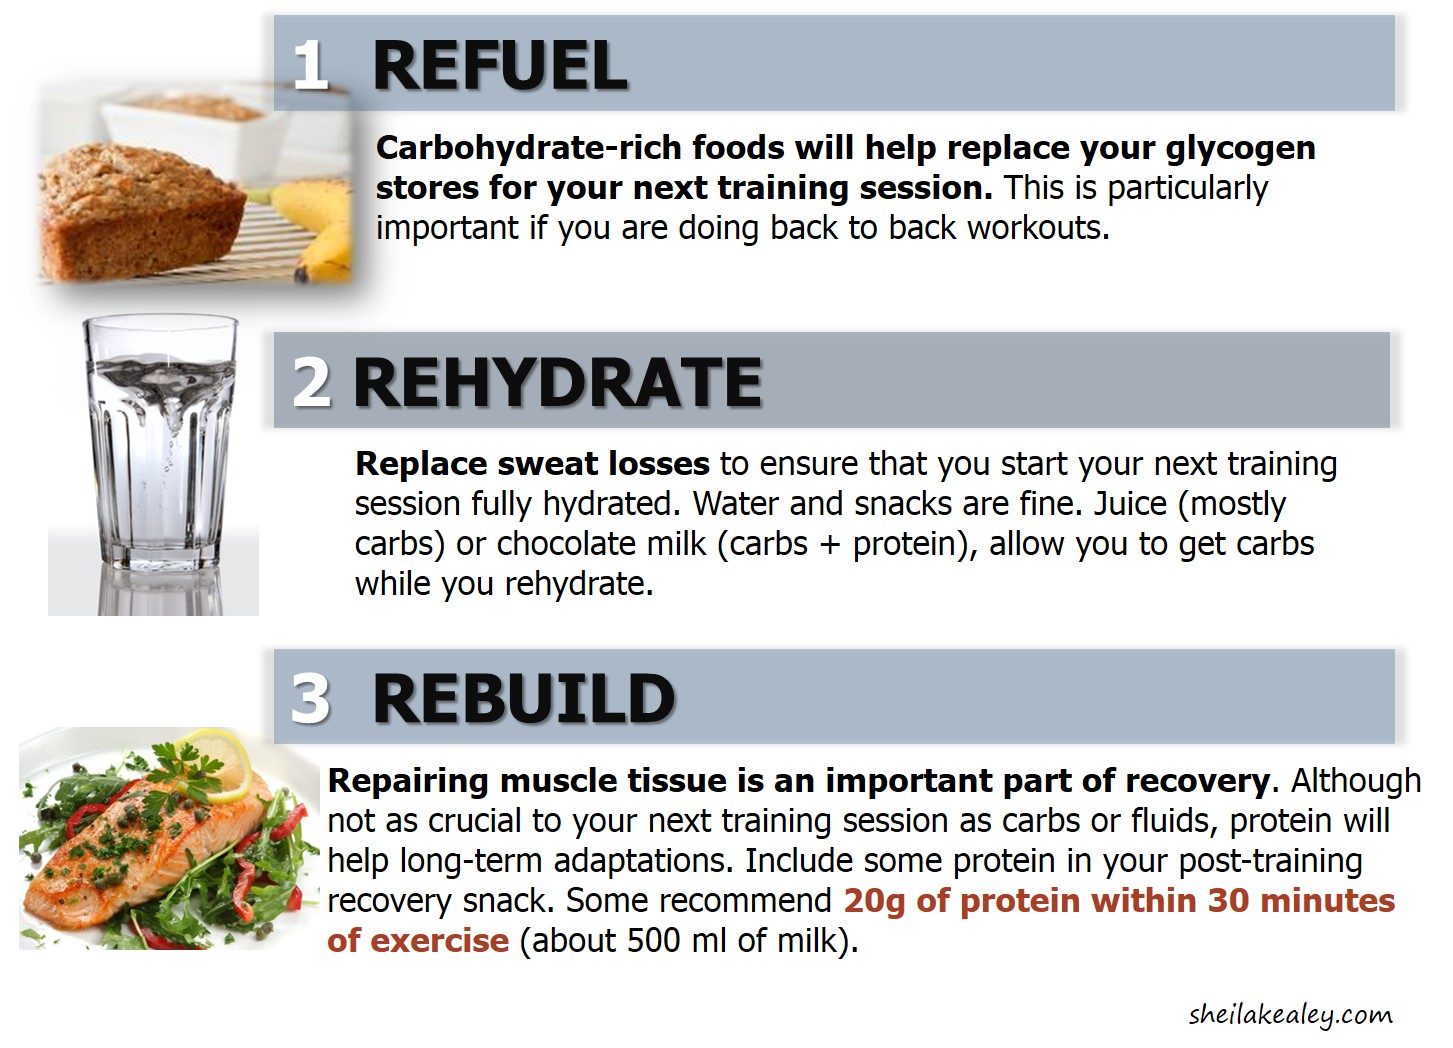 3 R recovery nutrition